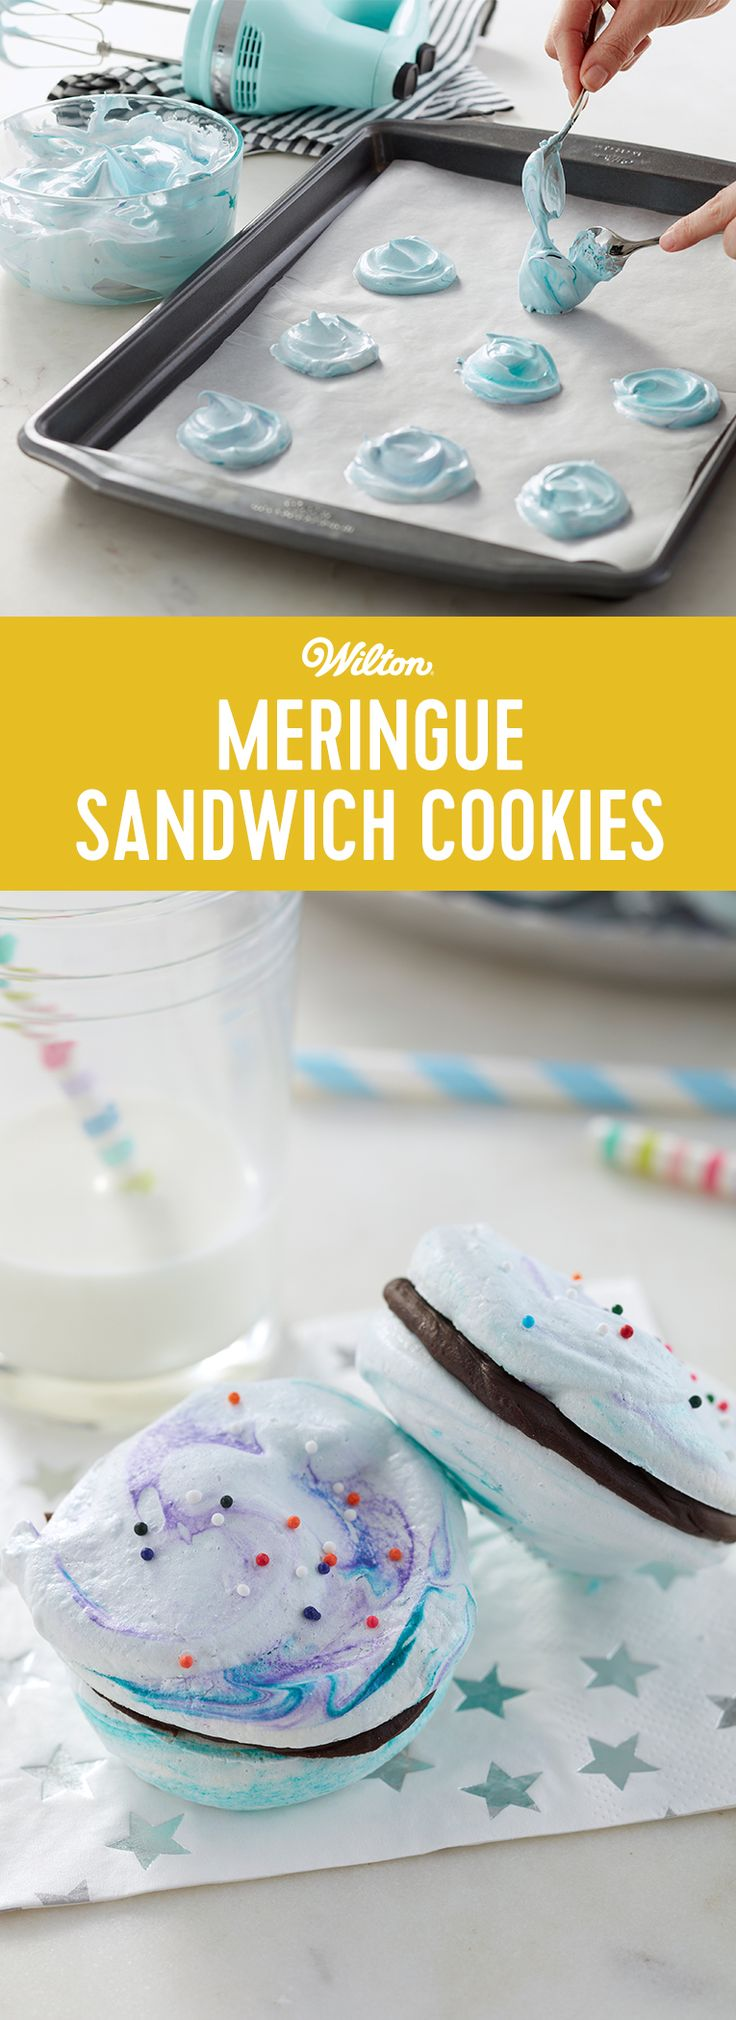 Light and airy, these Meringue Sandwich Cookies are held together with a decadent dark cocoa ganache filling, making these a great treat for the holiday season. Top your cookies with colorful sprinkles to add some added color and texture. #wiltoncakes #cookies #meringues #meringuecookies #cookiesandwich #recipes #cookieideas